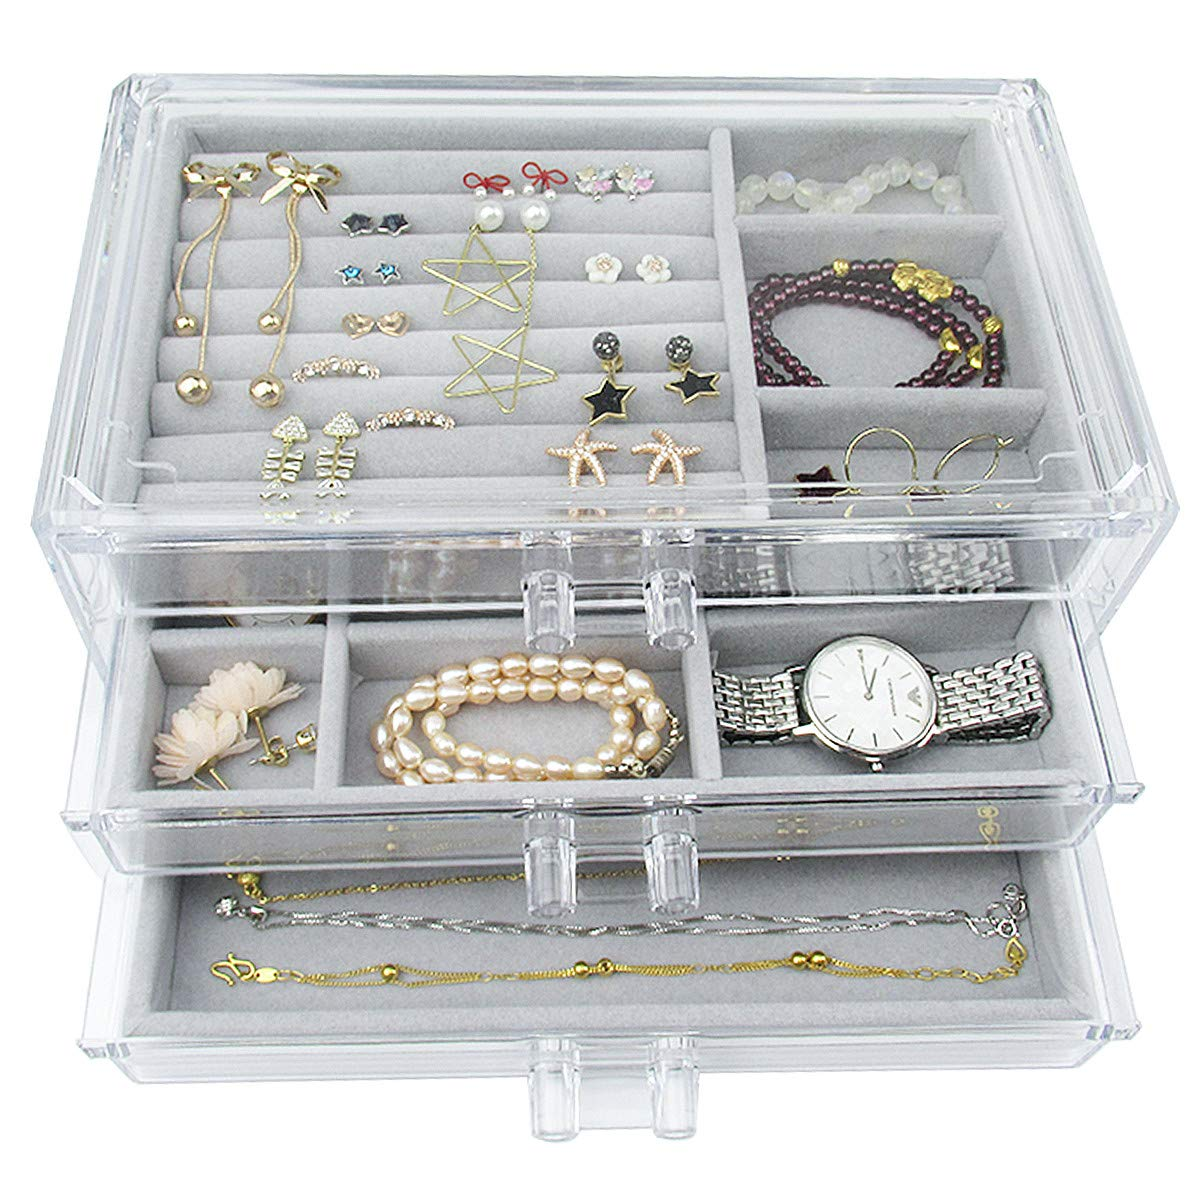 Acrylic Jewelry Box 3 Drawers, Velvet Jewellery Organizer, Earring Rings Necklaces Bracelets Display Case Gift for Women, Girls by Weiai